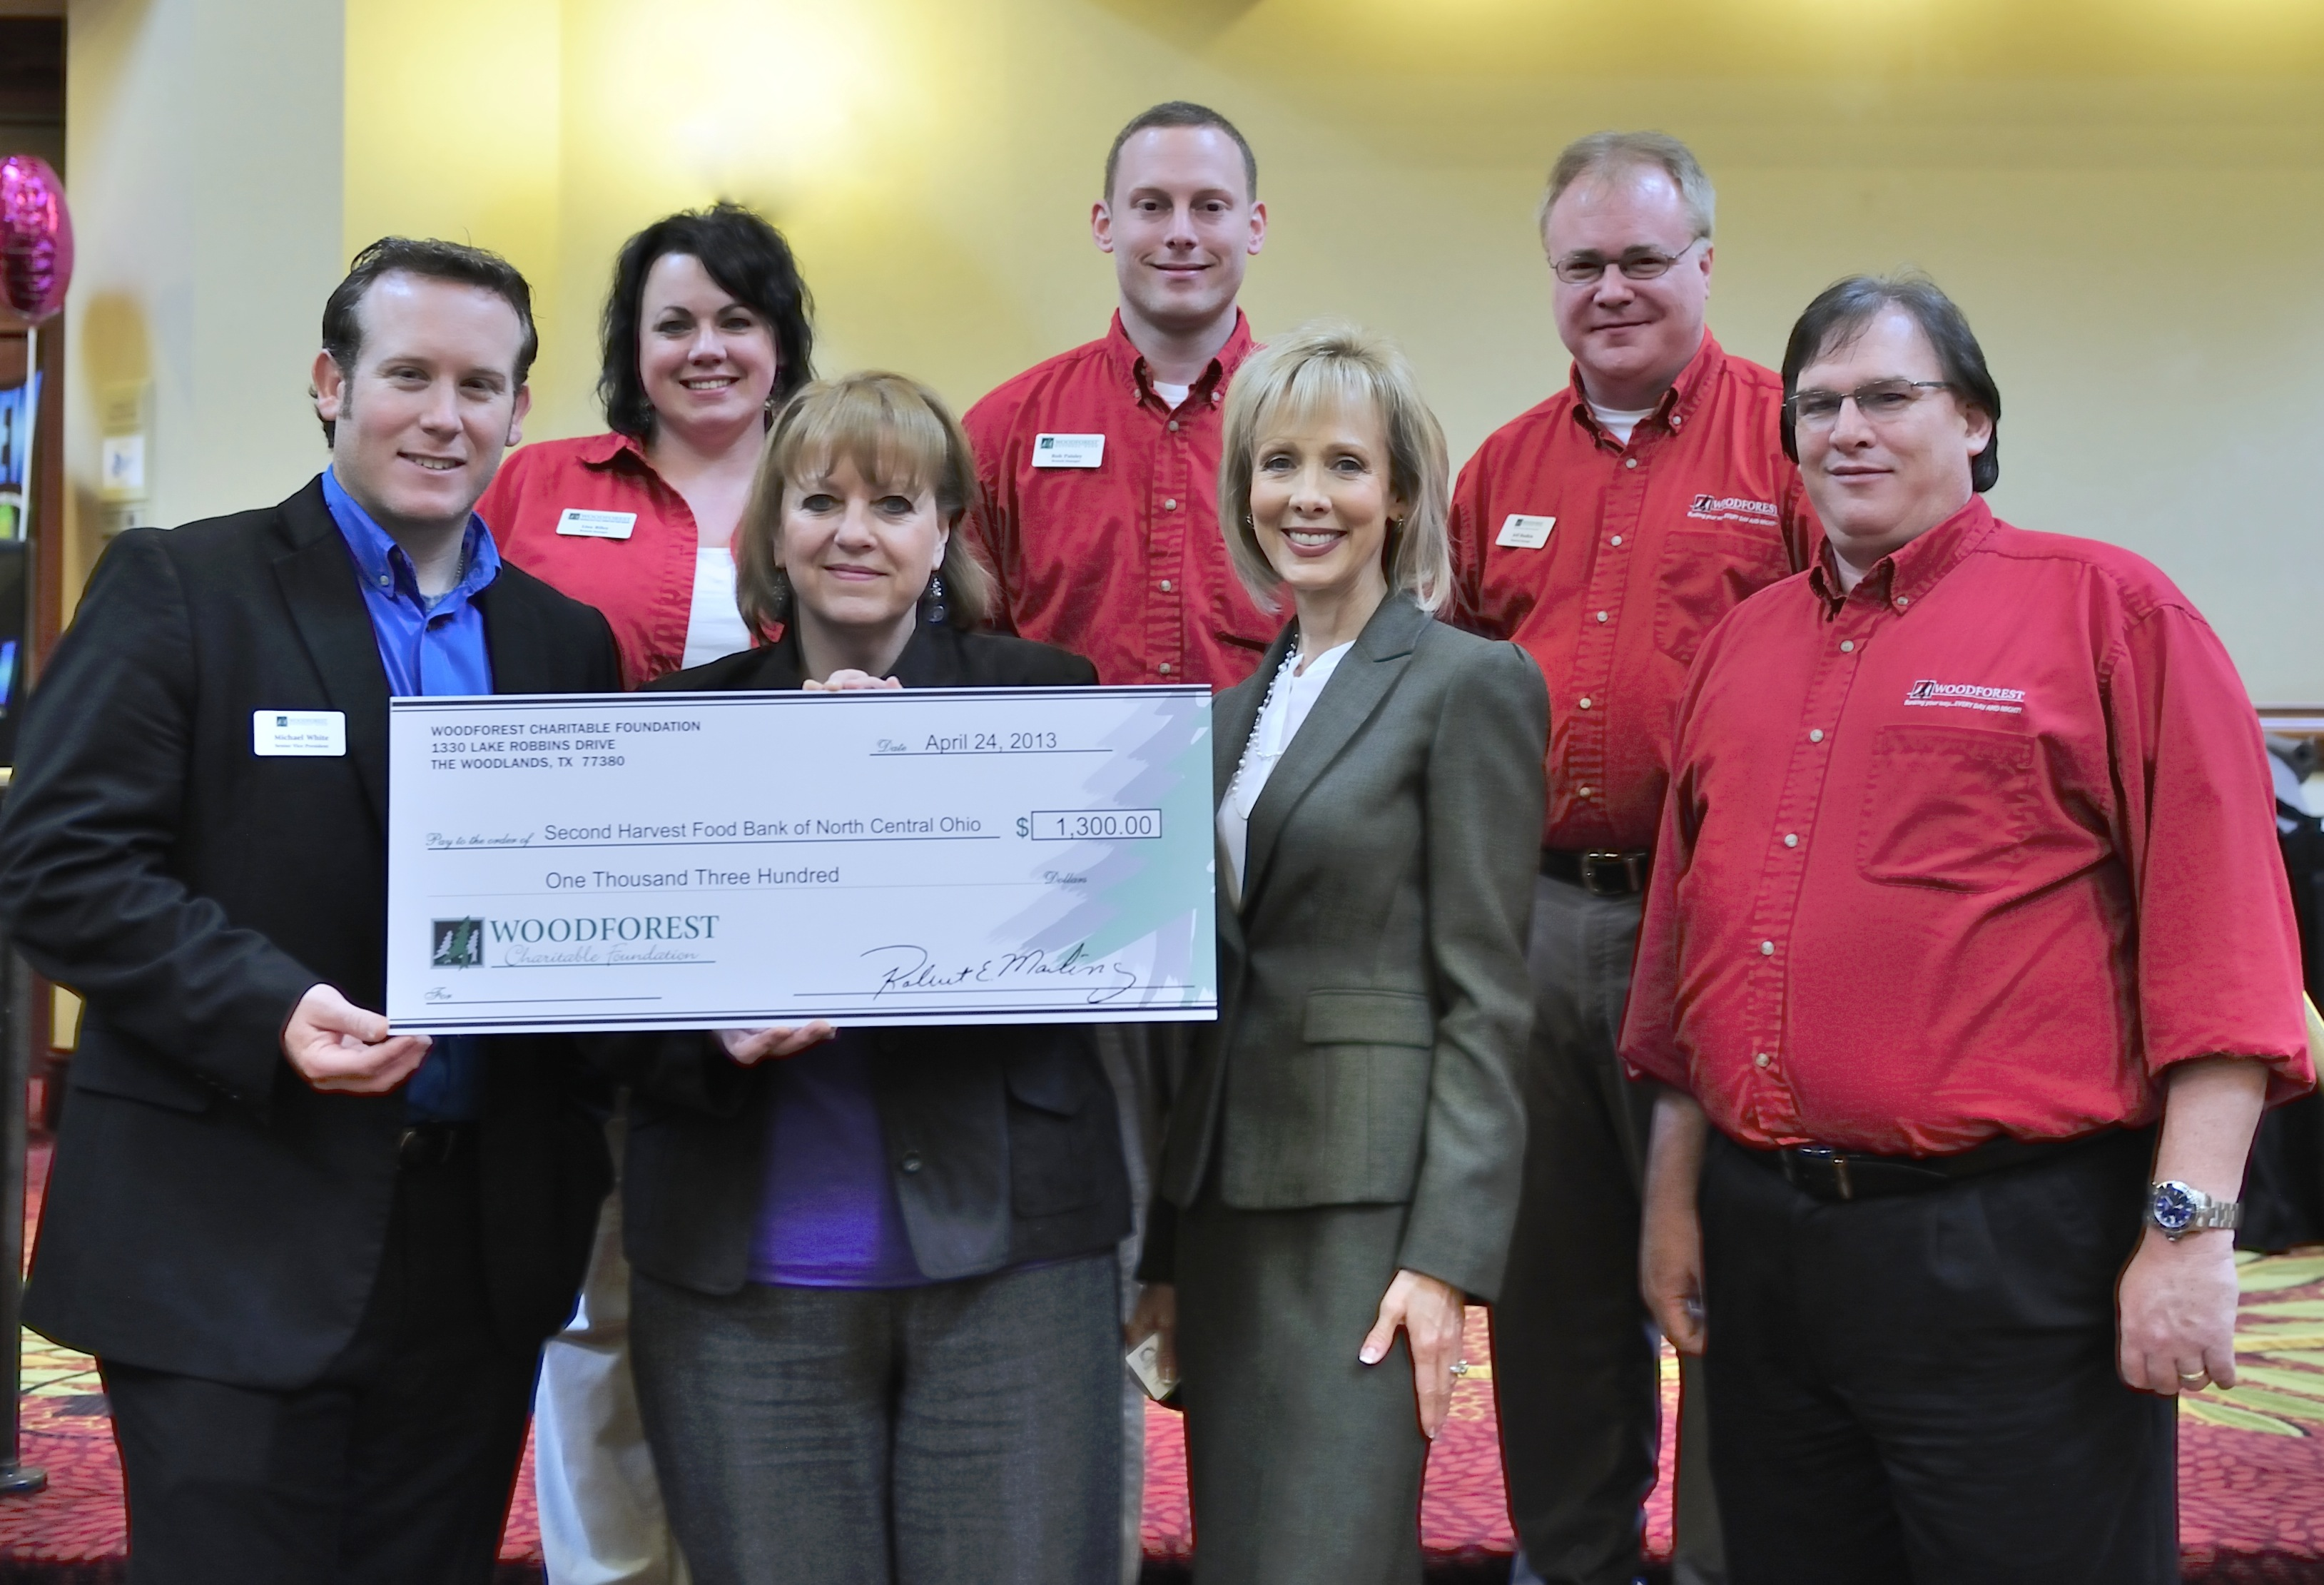 Second Harvest Food Bank of North Central Ohio receives $1,300 donation from WCF.